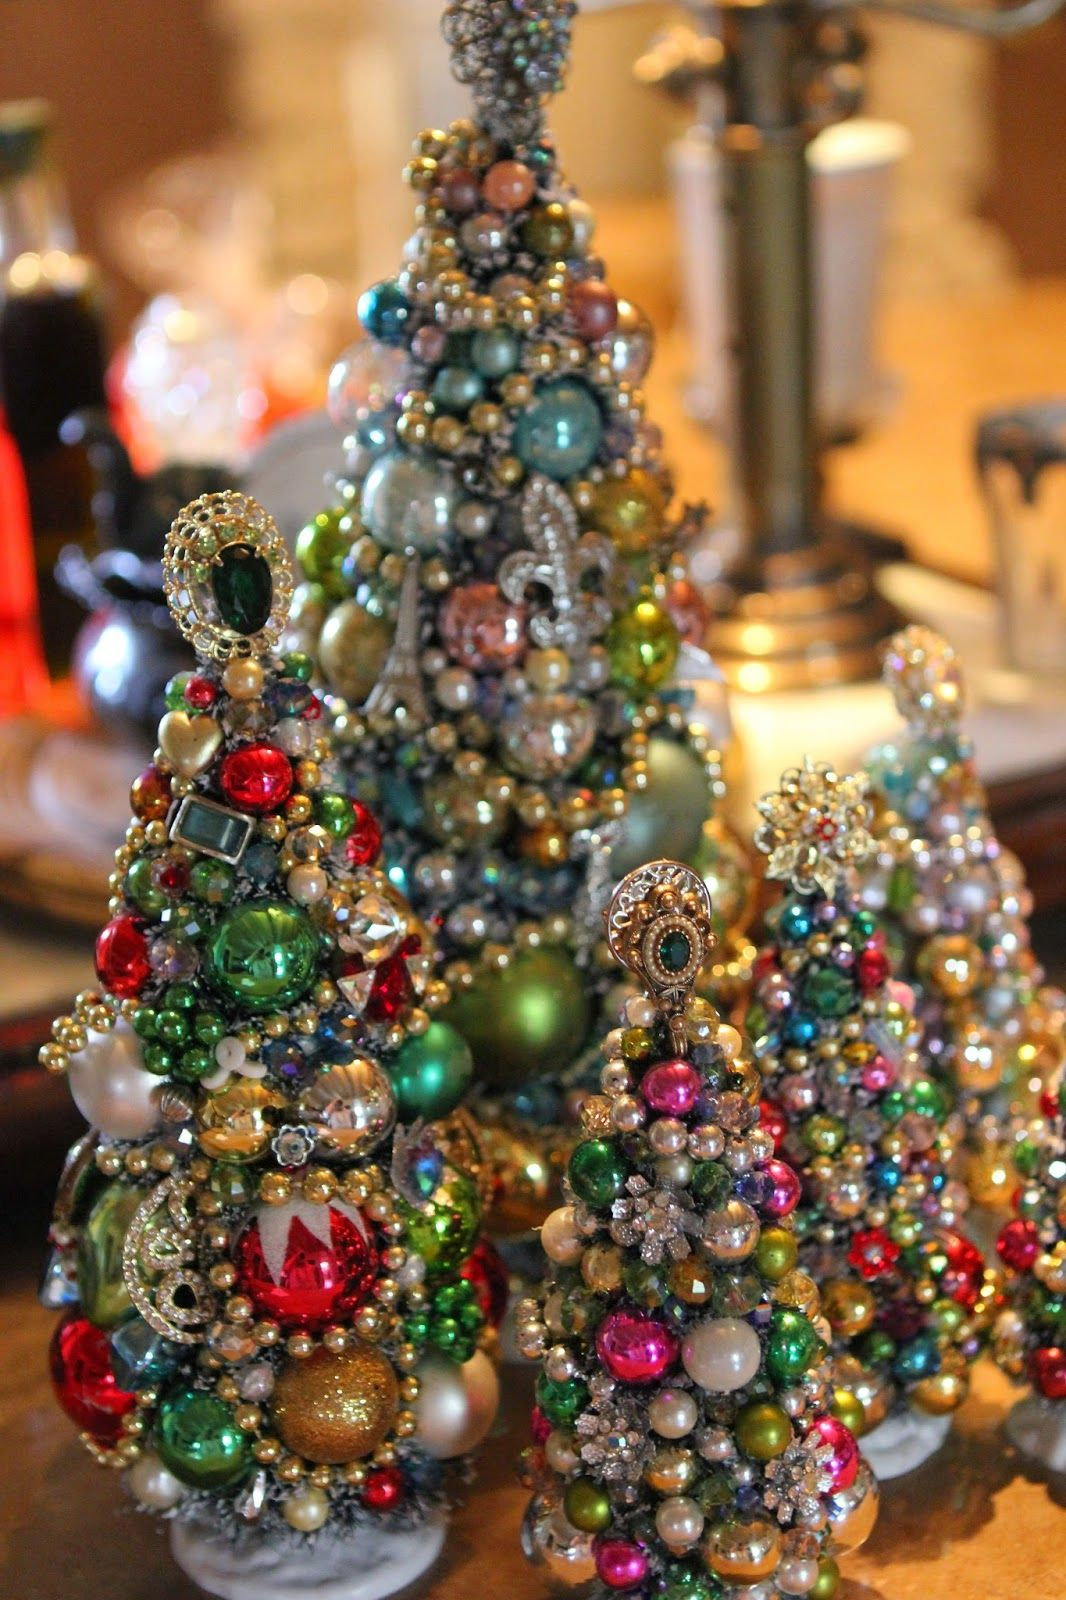 Jewelry and ornament tree | Noel | Pinterest | Ornament tree ...